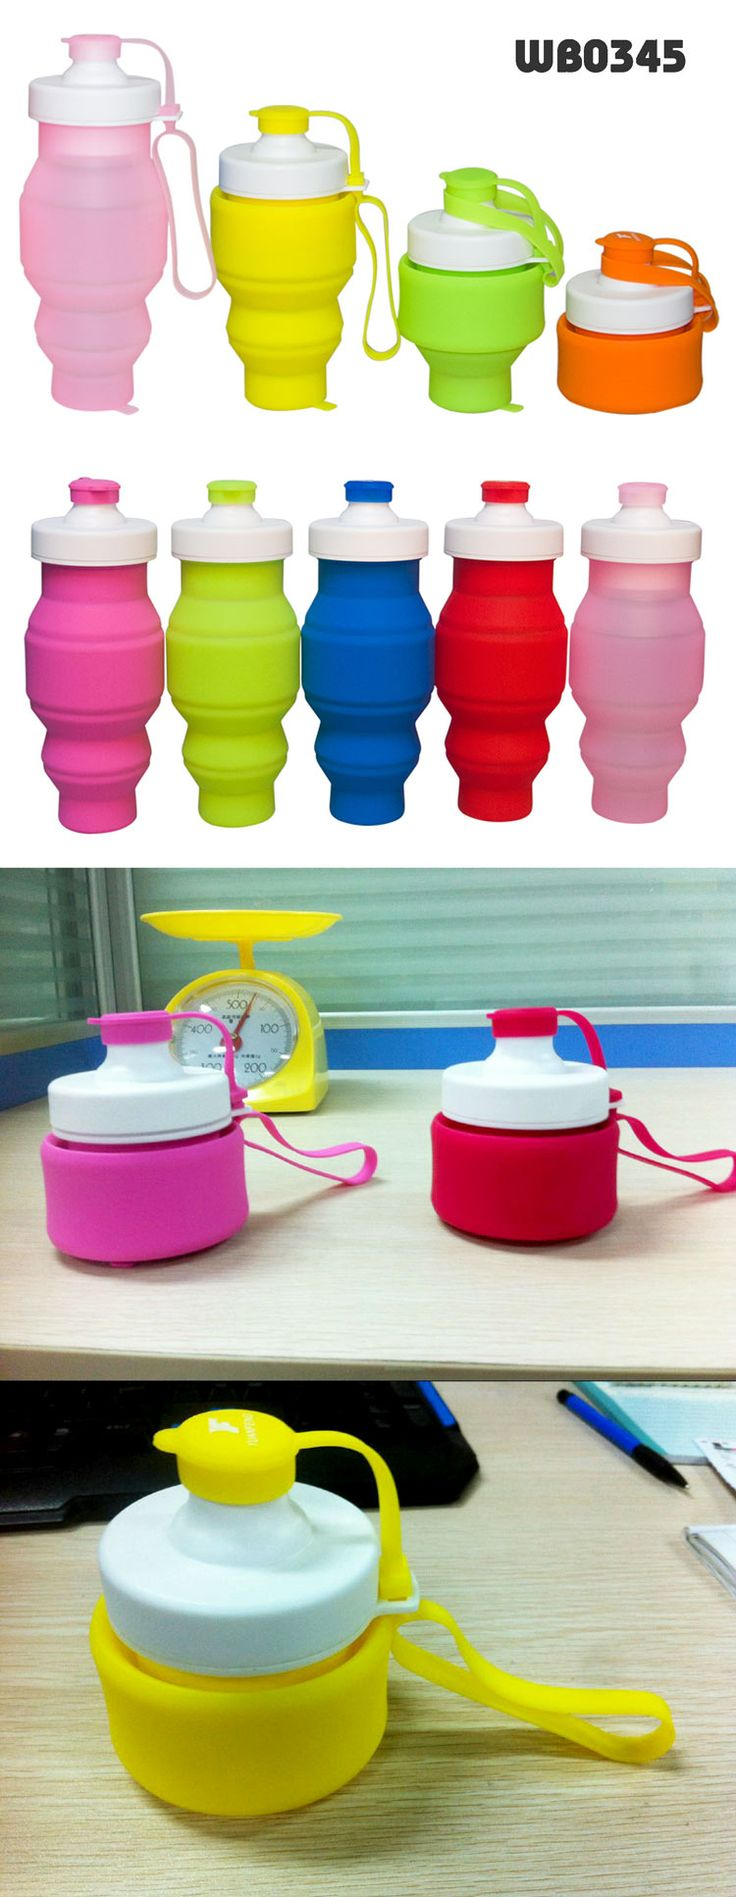 Silicone Foldable Water Bottle Specifications:  •material: silicone+pp •size:  20*7.8cm (unfolded) •capacity: 520ML •foldable in small size, portable to carry •nice design with different colorful colors •logo printing is welcomed www.ideagroupigm.com